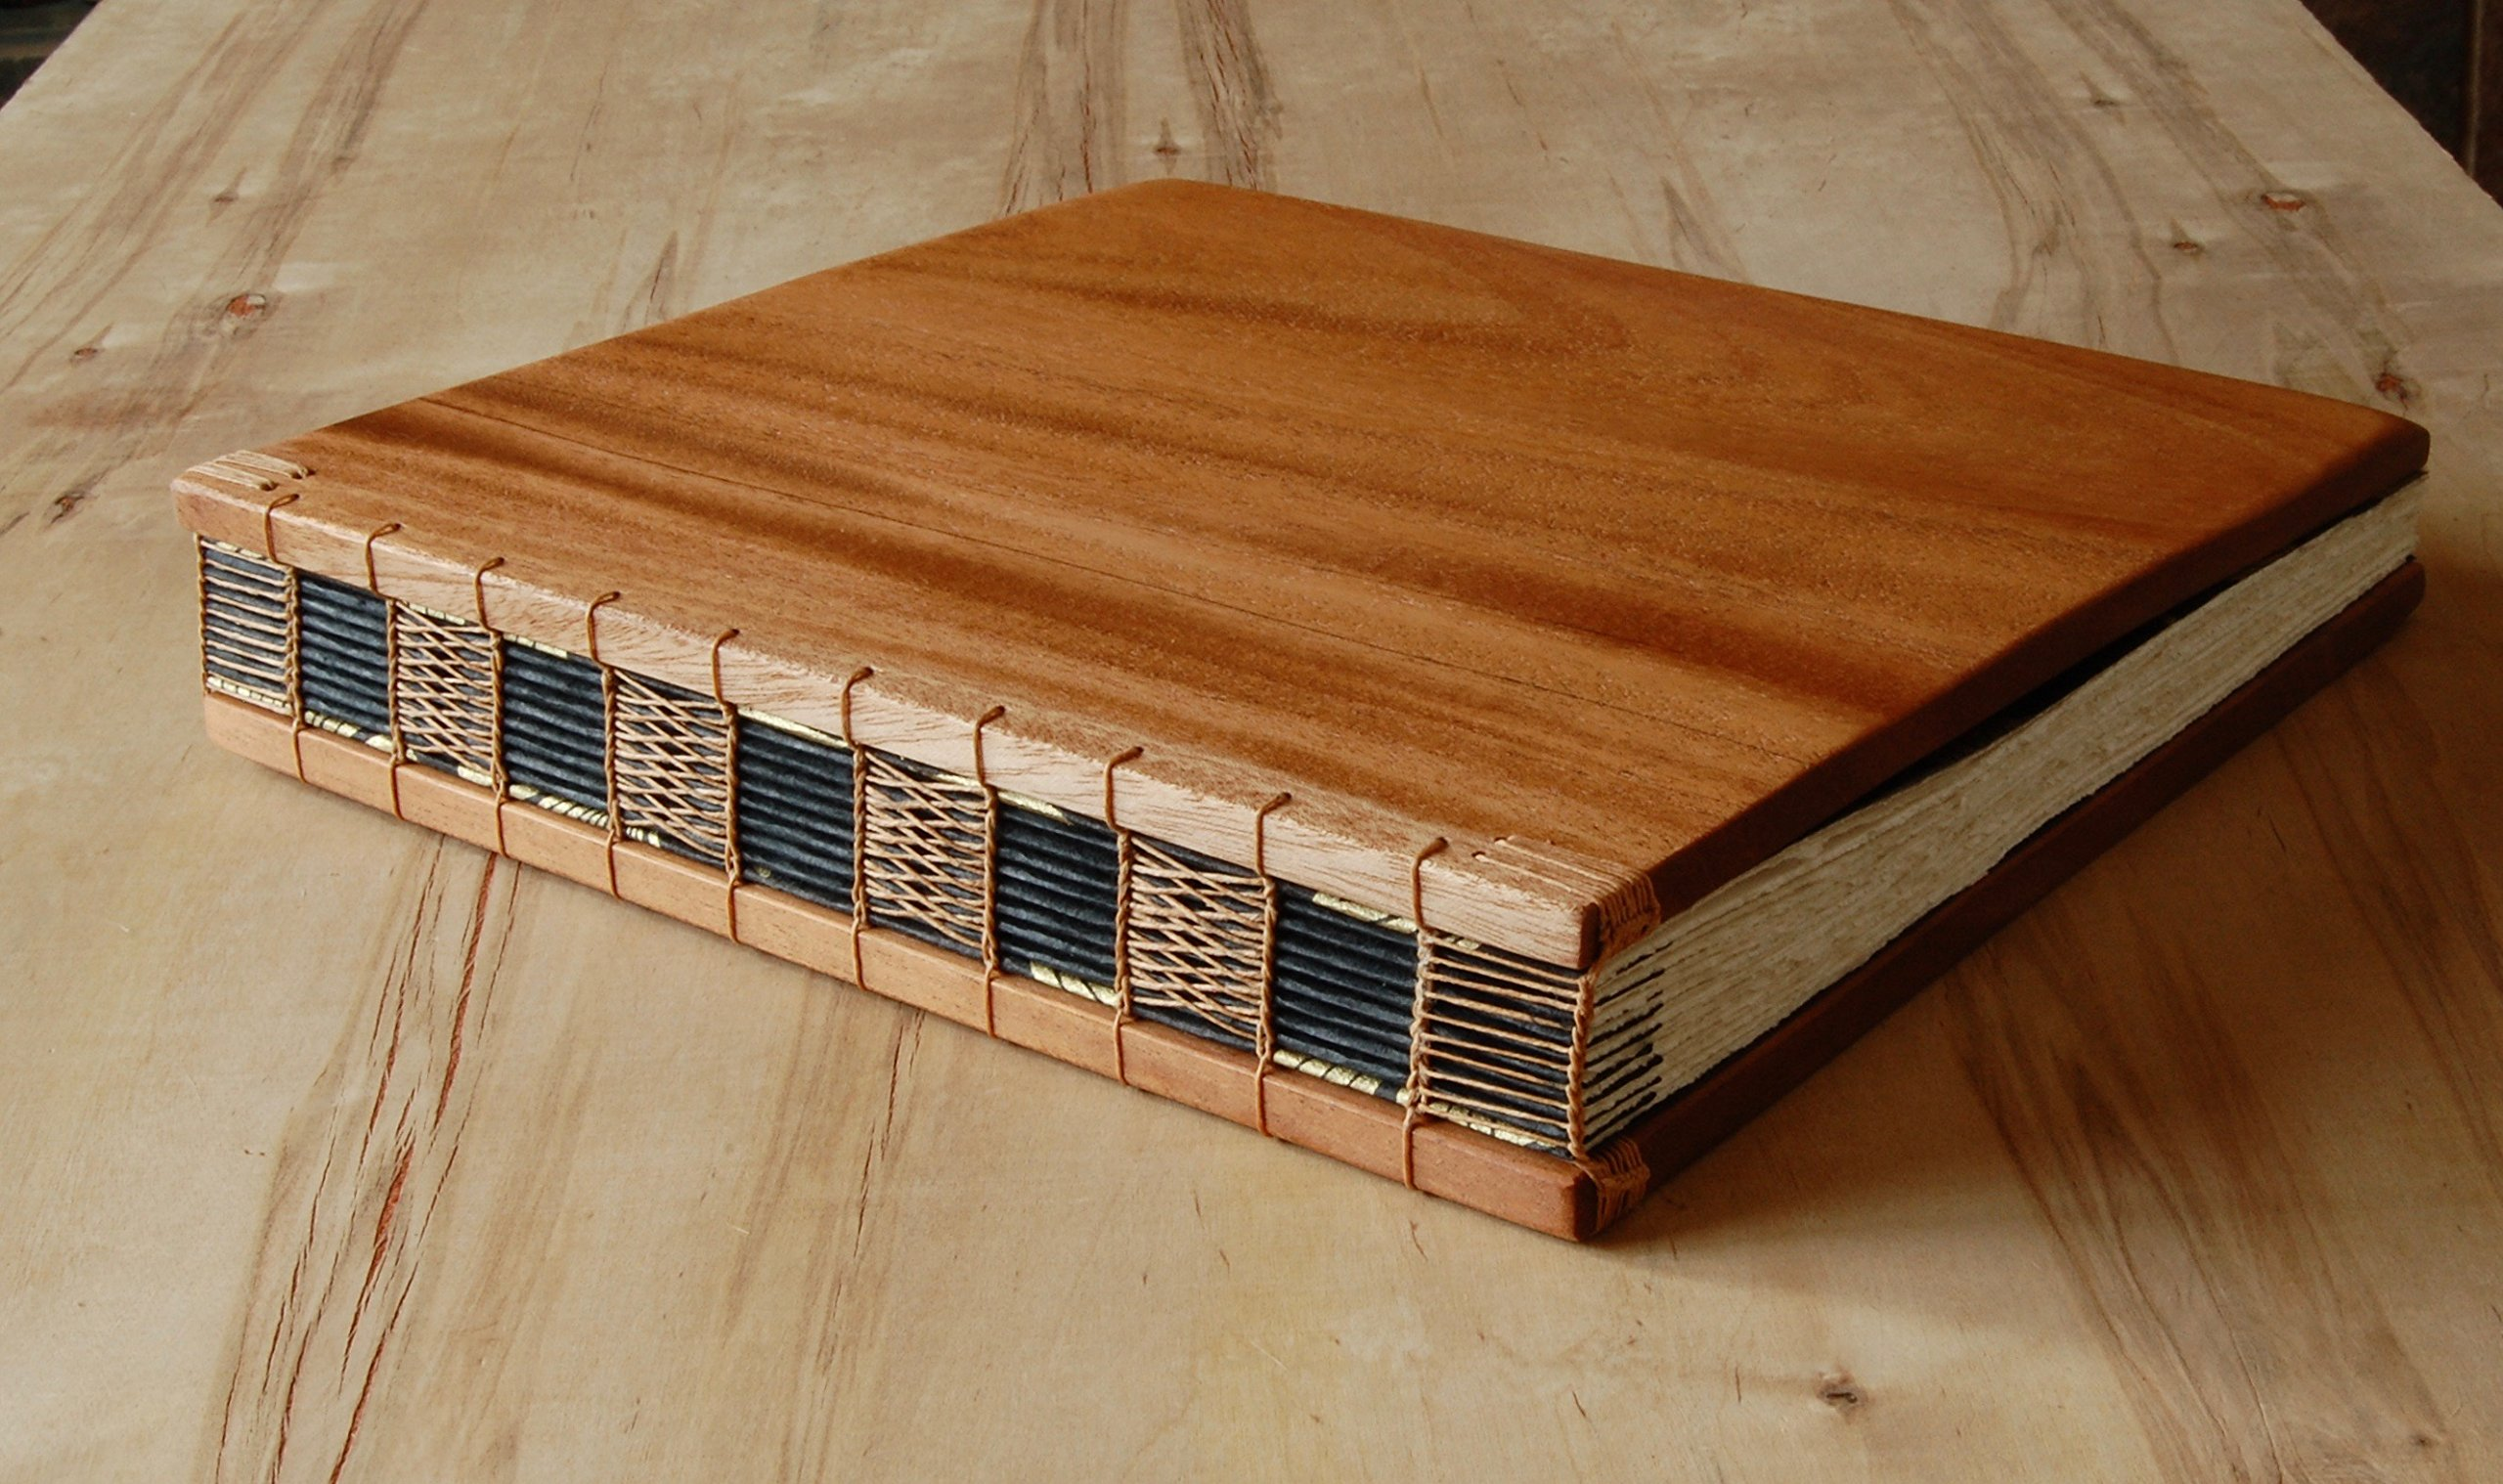 Handmade Wedding Guest Book or Vacation Home Guestbook - Mahogany Wood